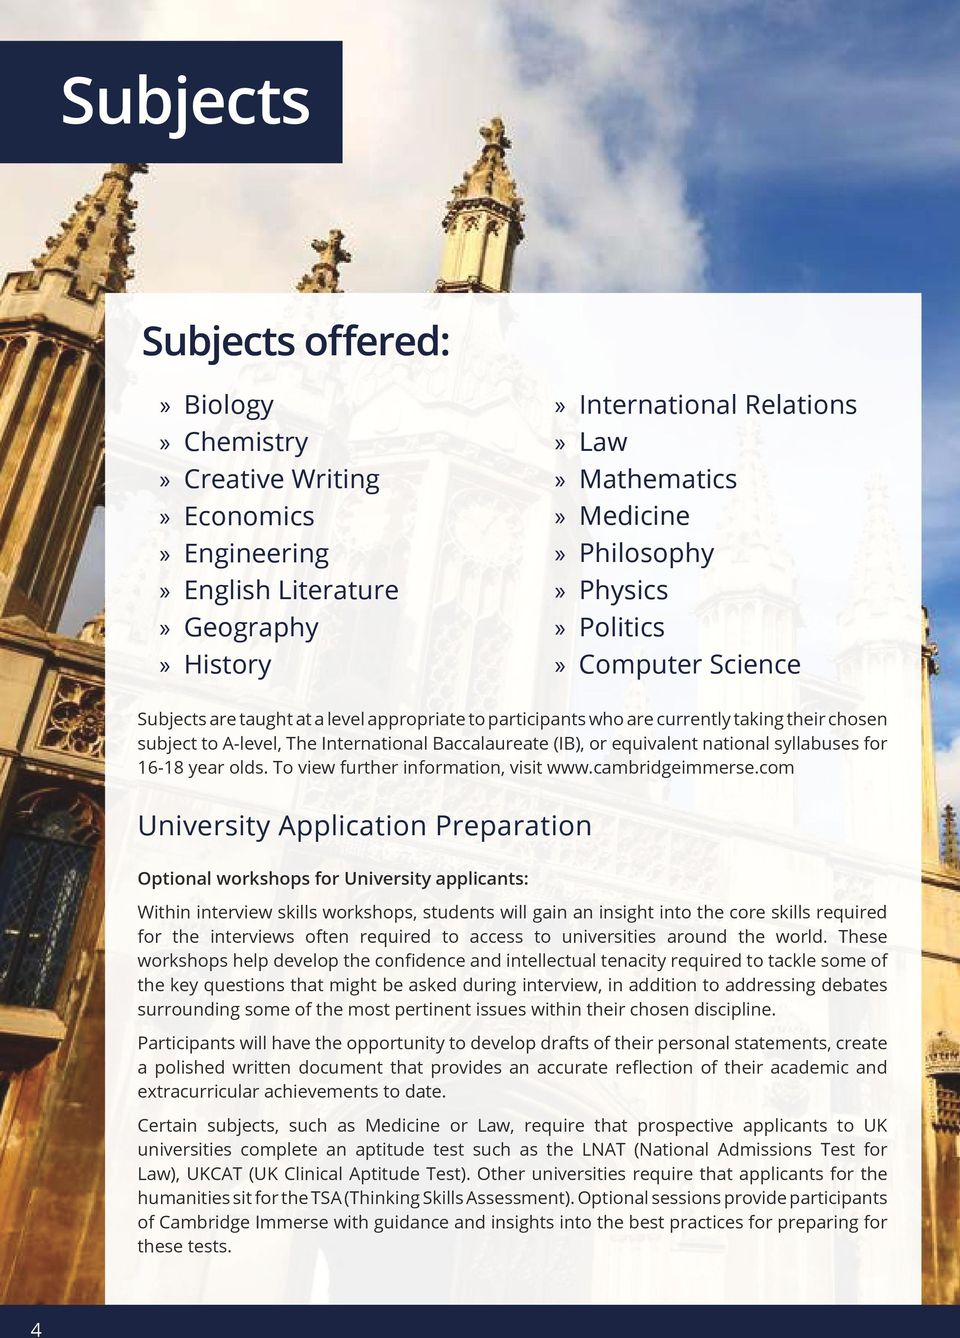 syllabuses for 16-18 year olds. To view further information, visit www.cambridgeimmerse.